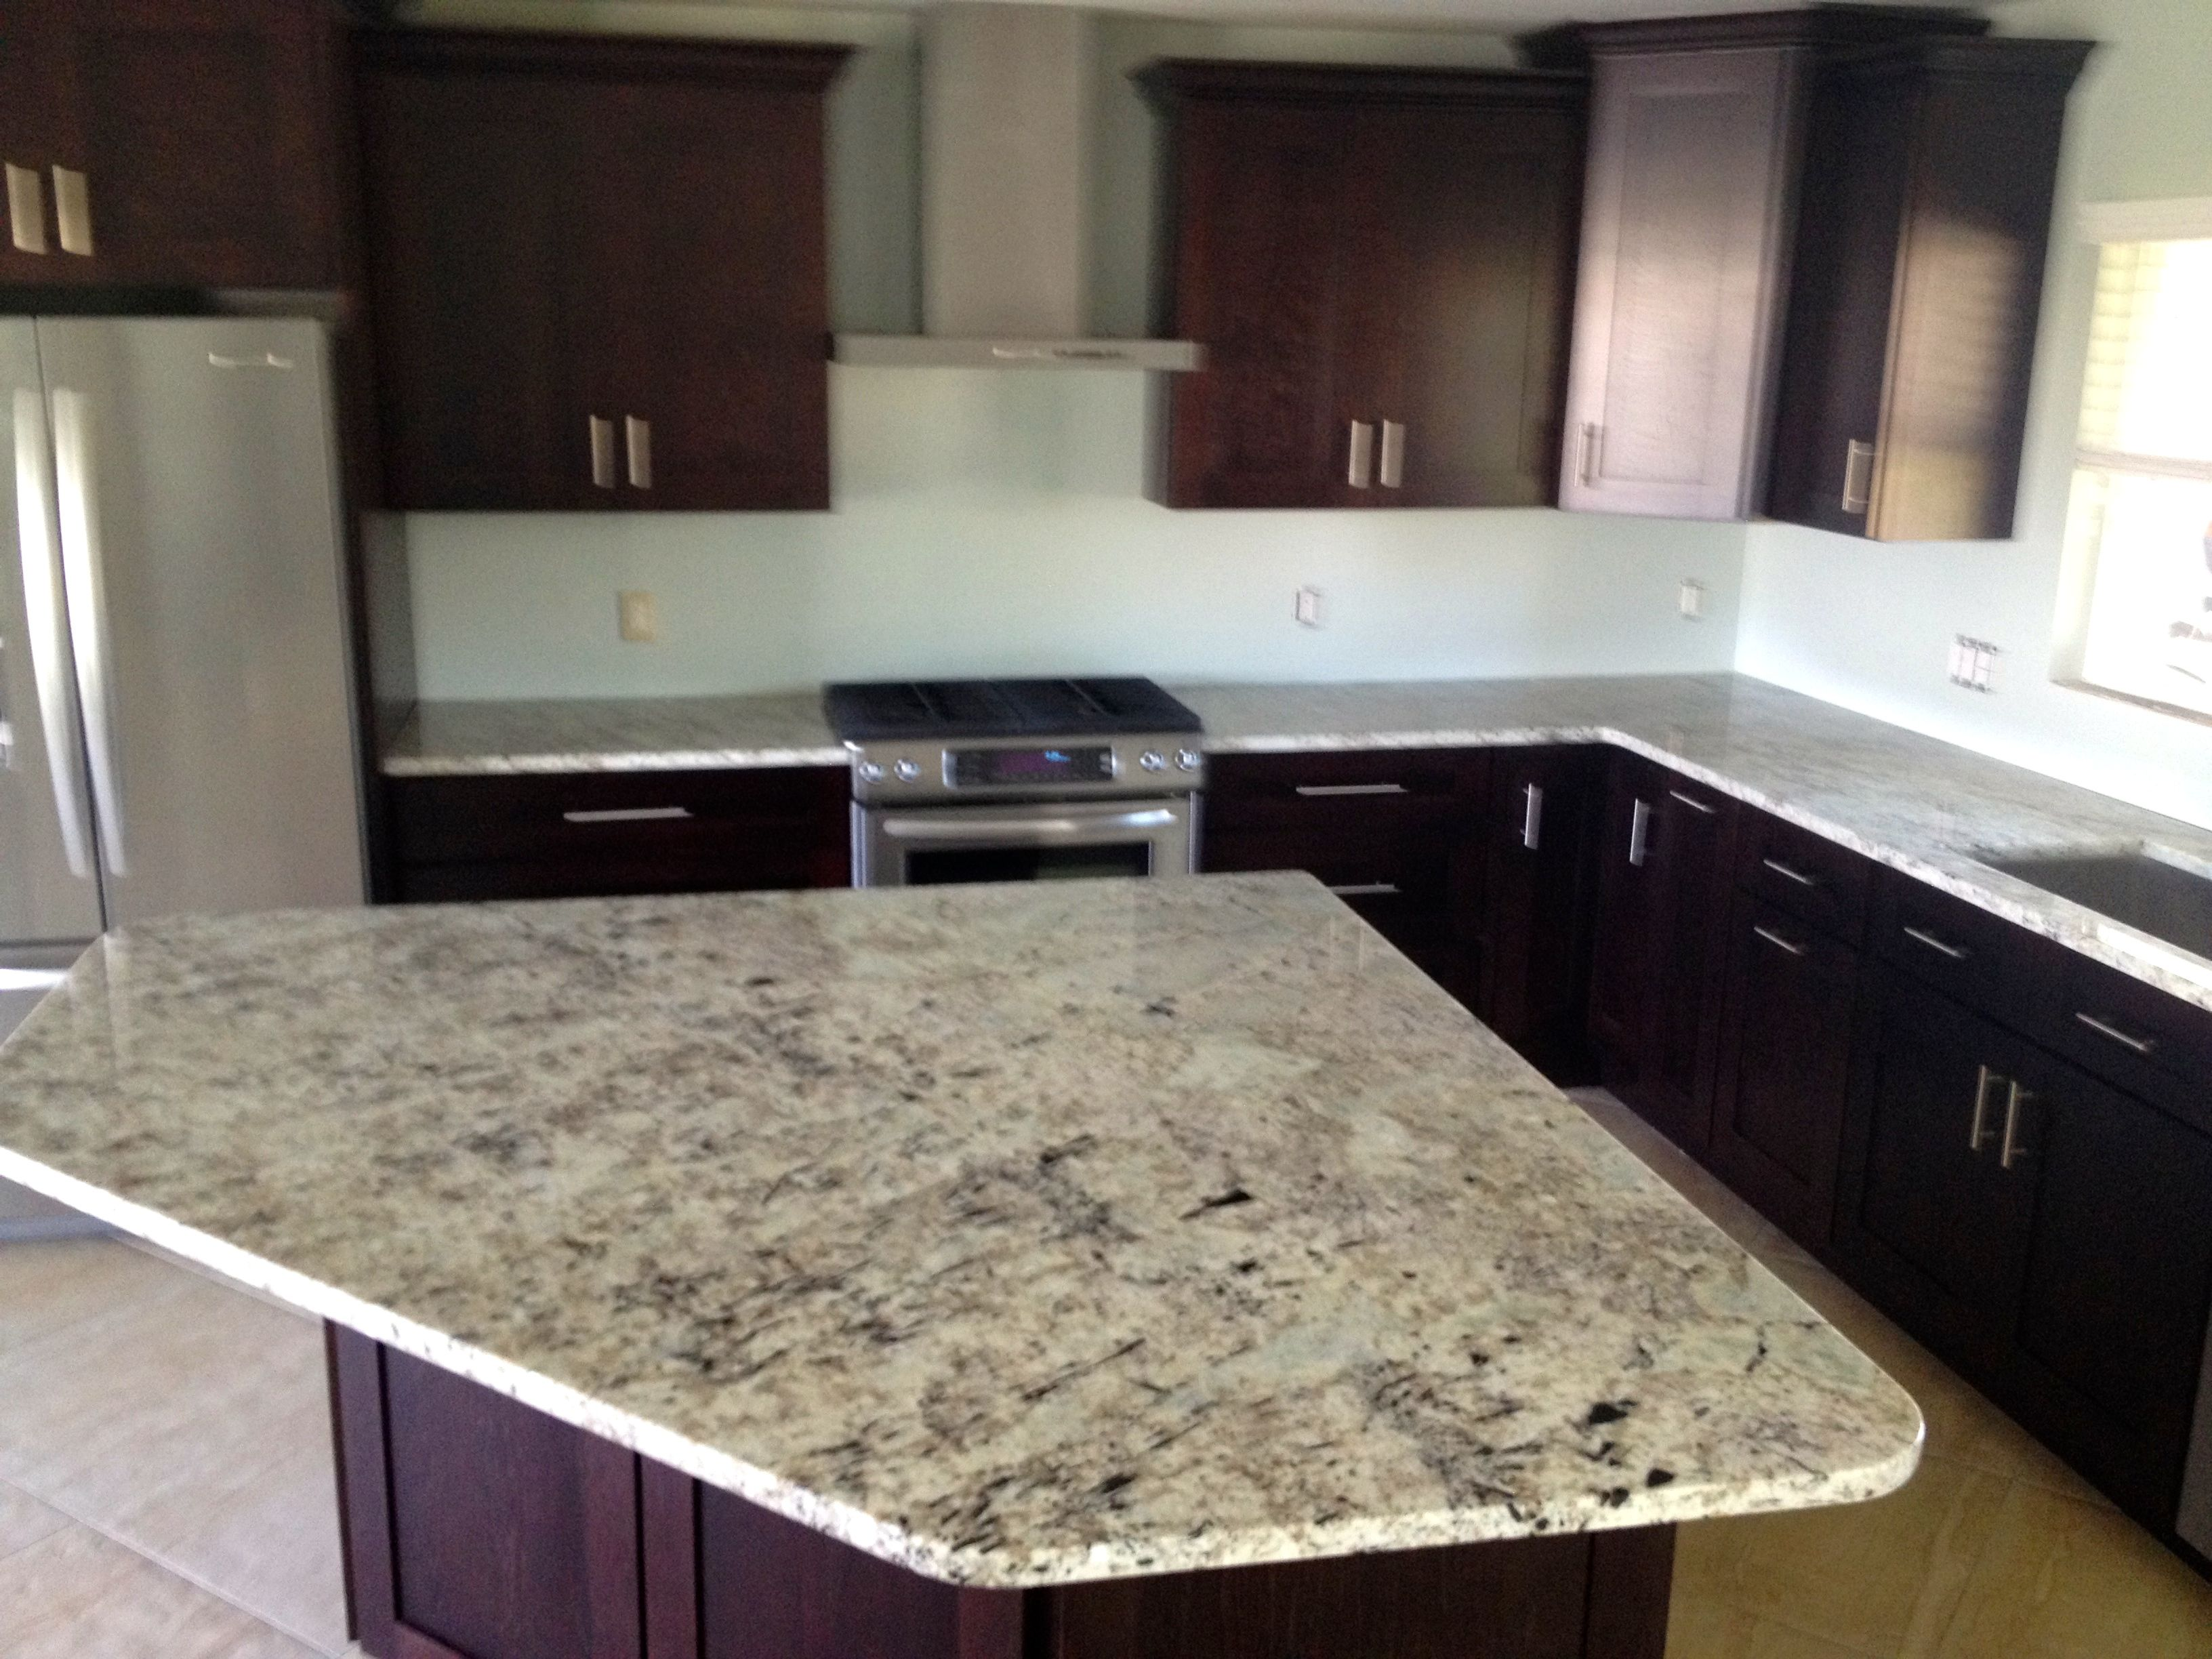 Pleasing Mocha Shaker Cabinets Modern Hardware Galaxy White Granite Home Interior And Landscaping Ologienasavecom